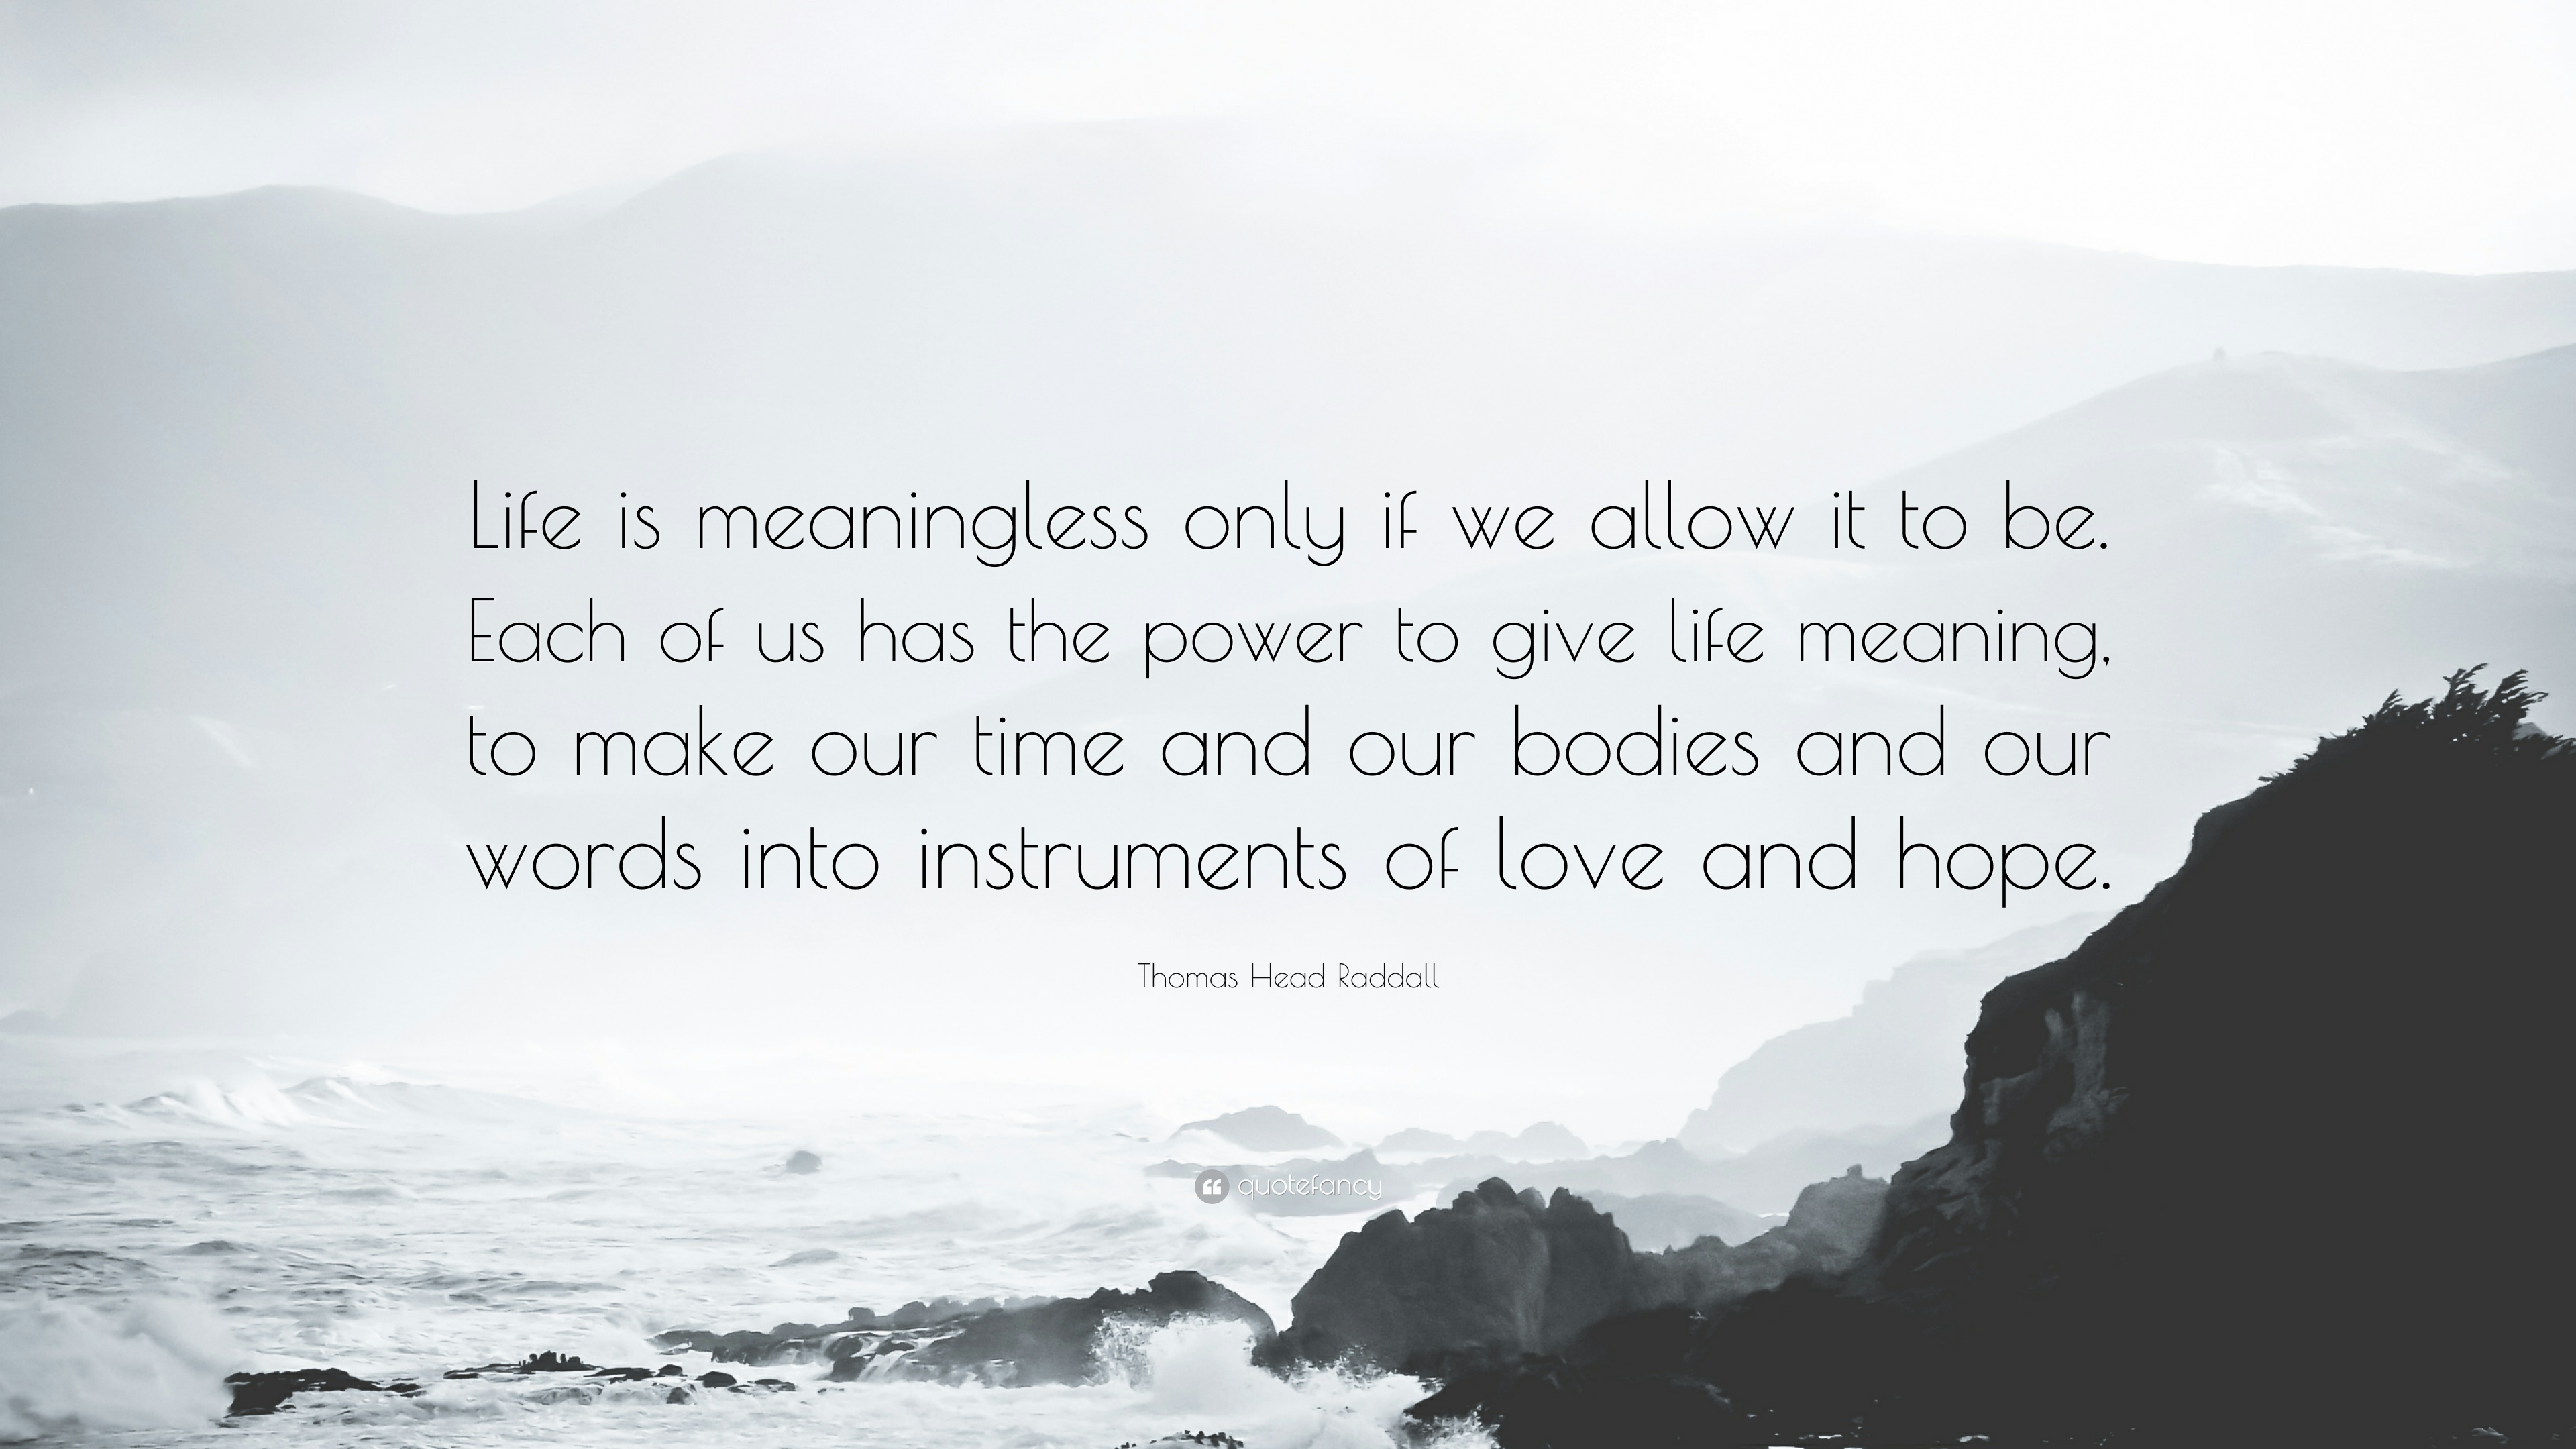 """Thomas Head Raddall Quote: """"Life is meaningless only if we allow it to be. Each  of us has the power to give life meaning, to make our time and our b..."""""""